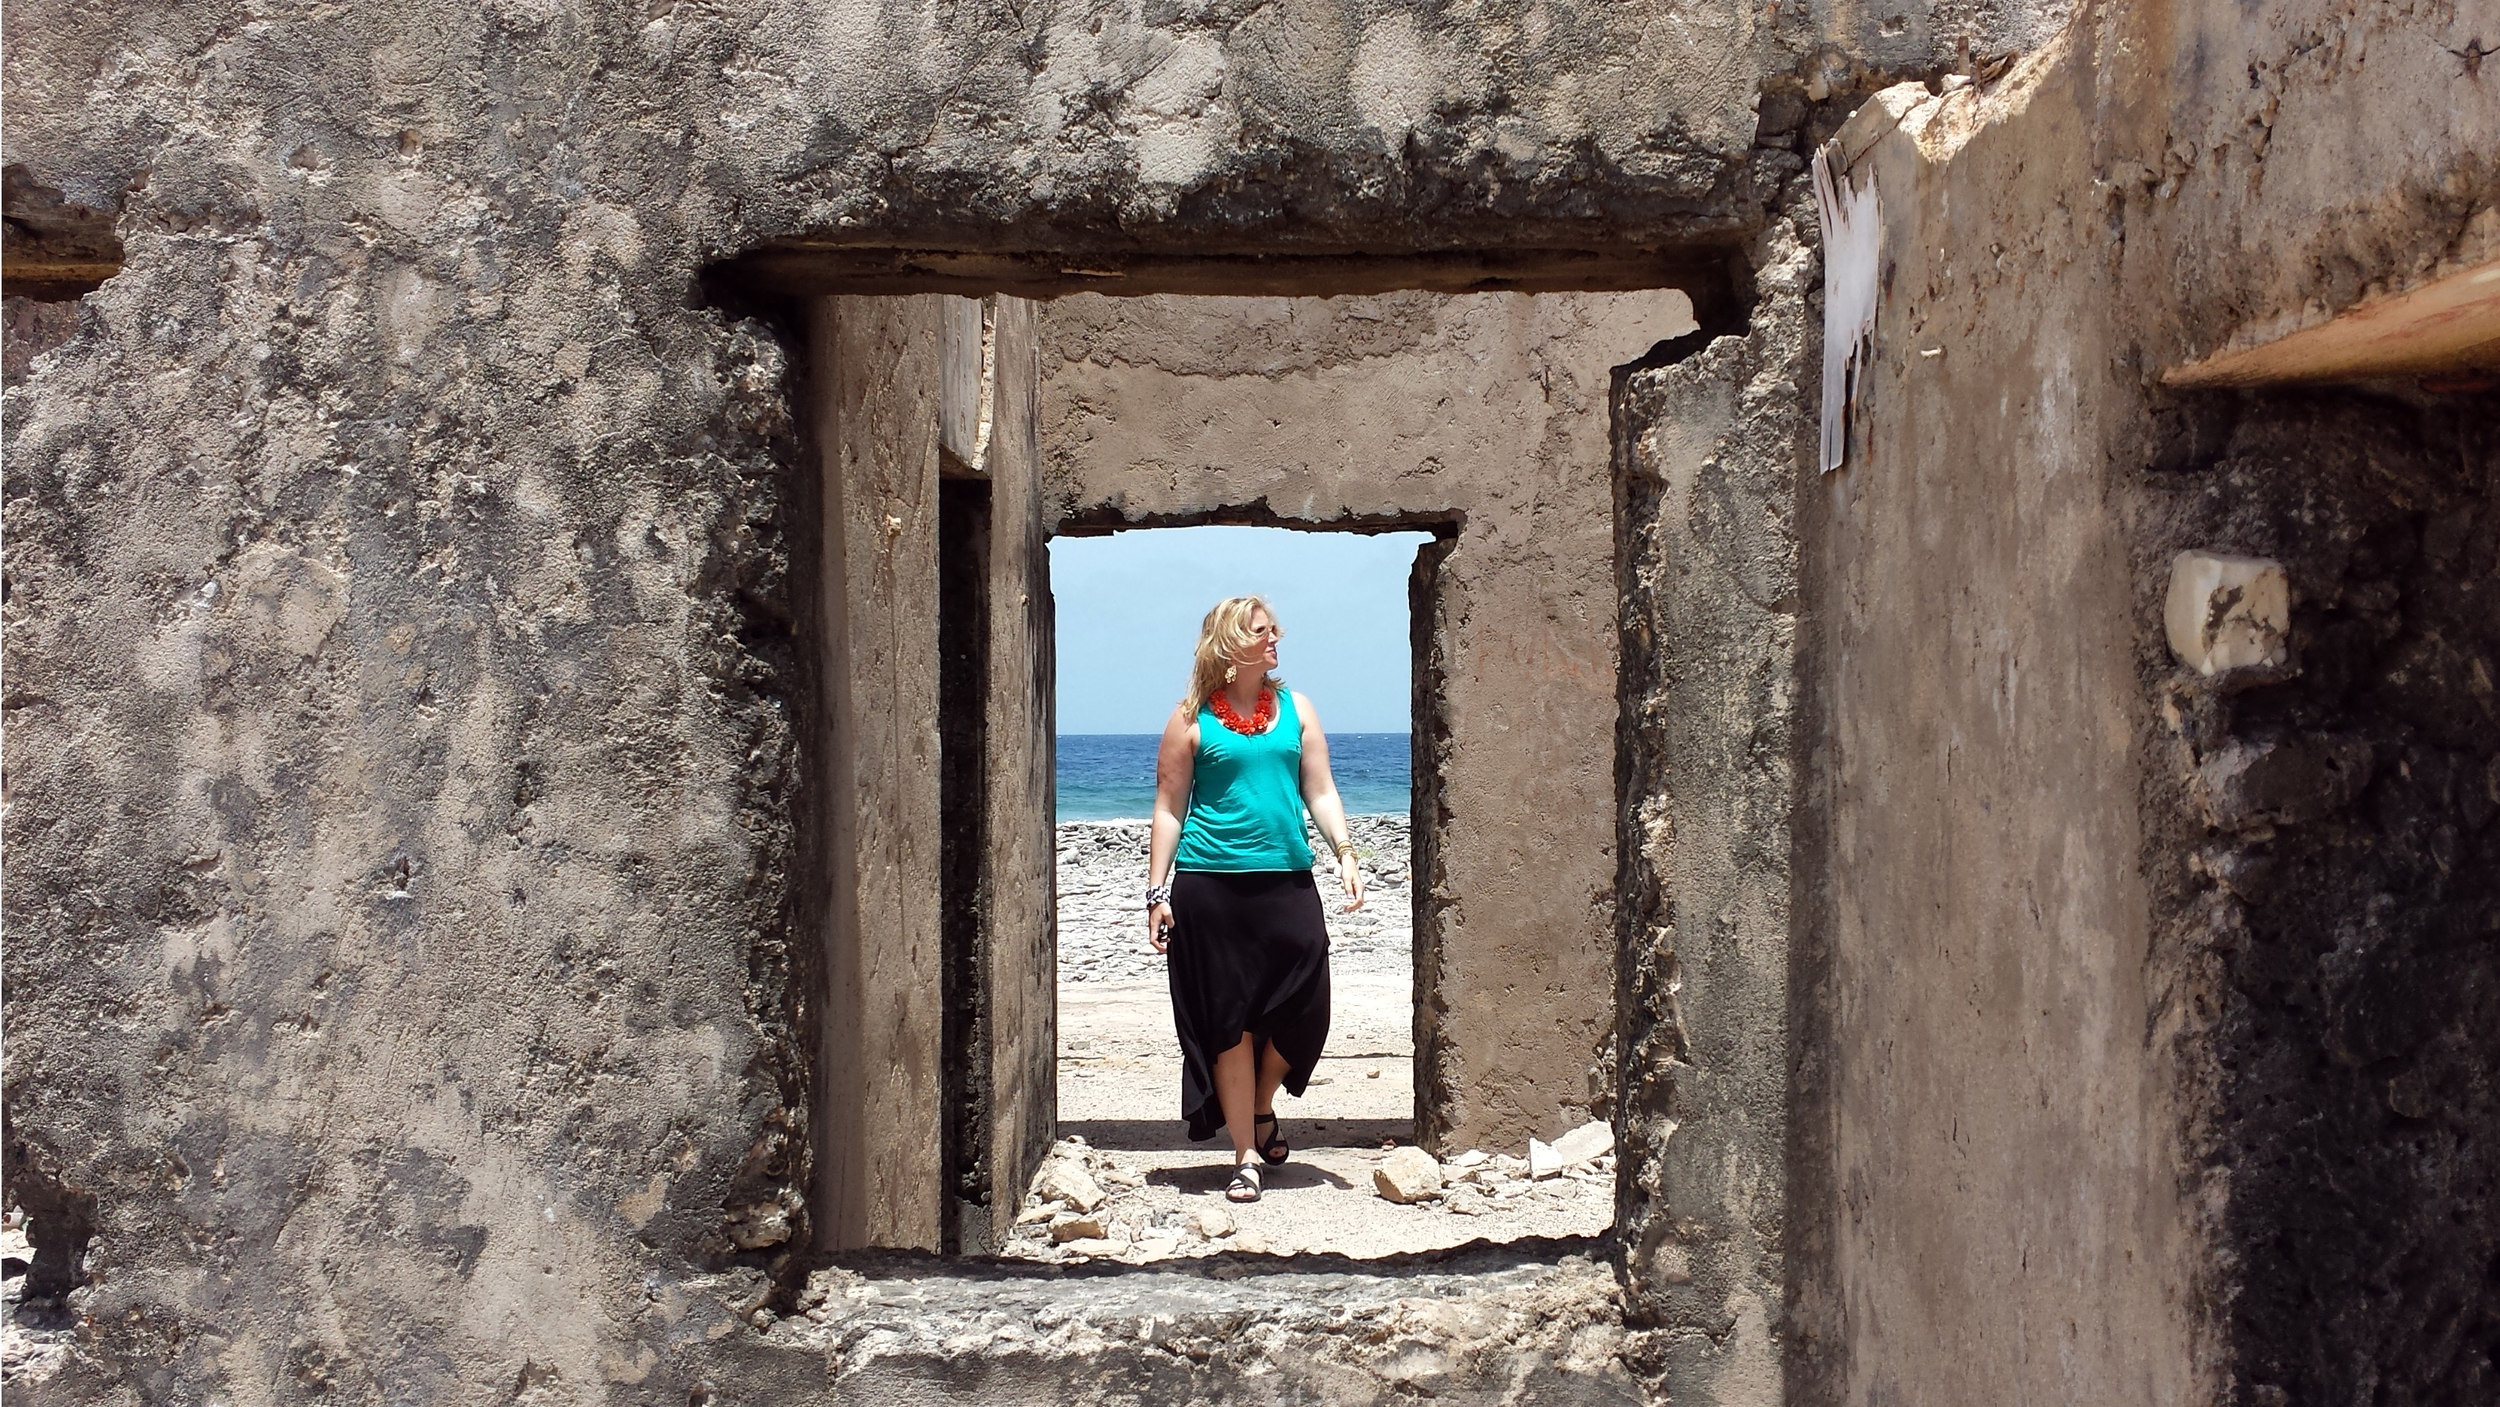 A woman walks through the ruins of a seaside home in Bonaire, an island in the Leeward Antilles.